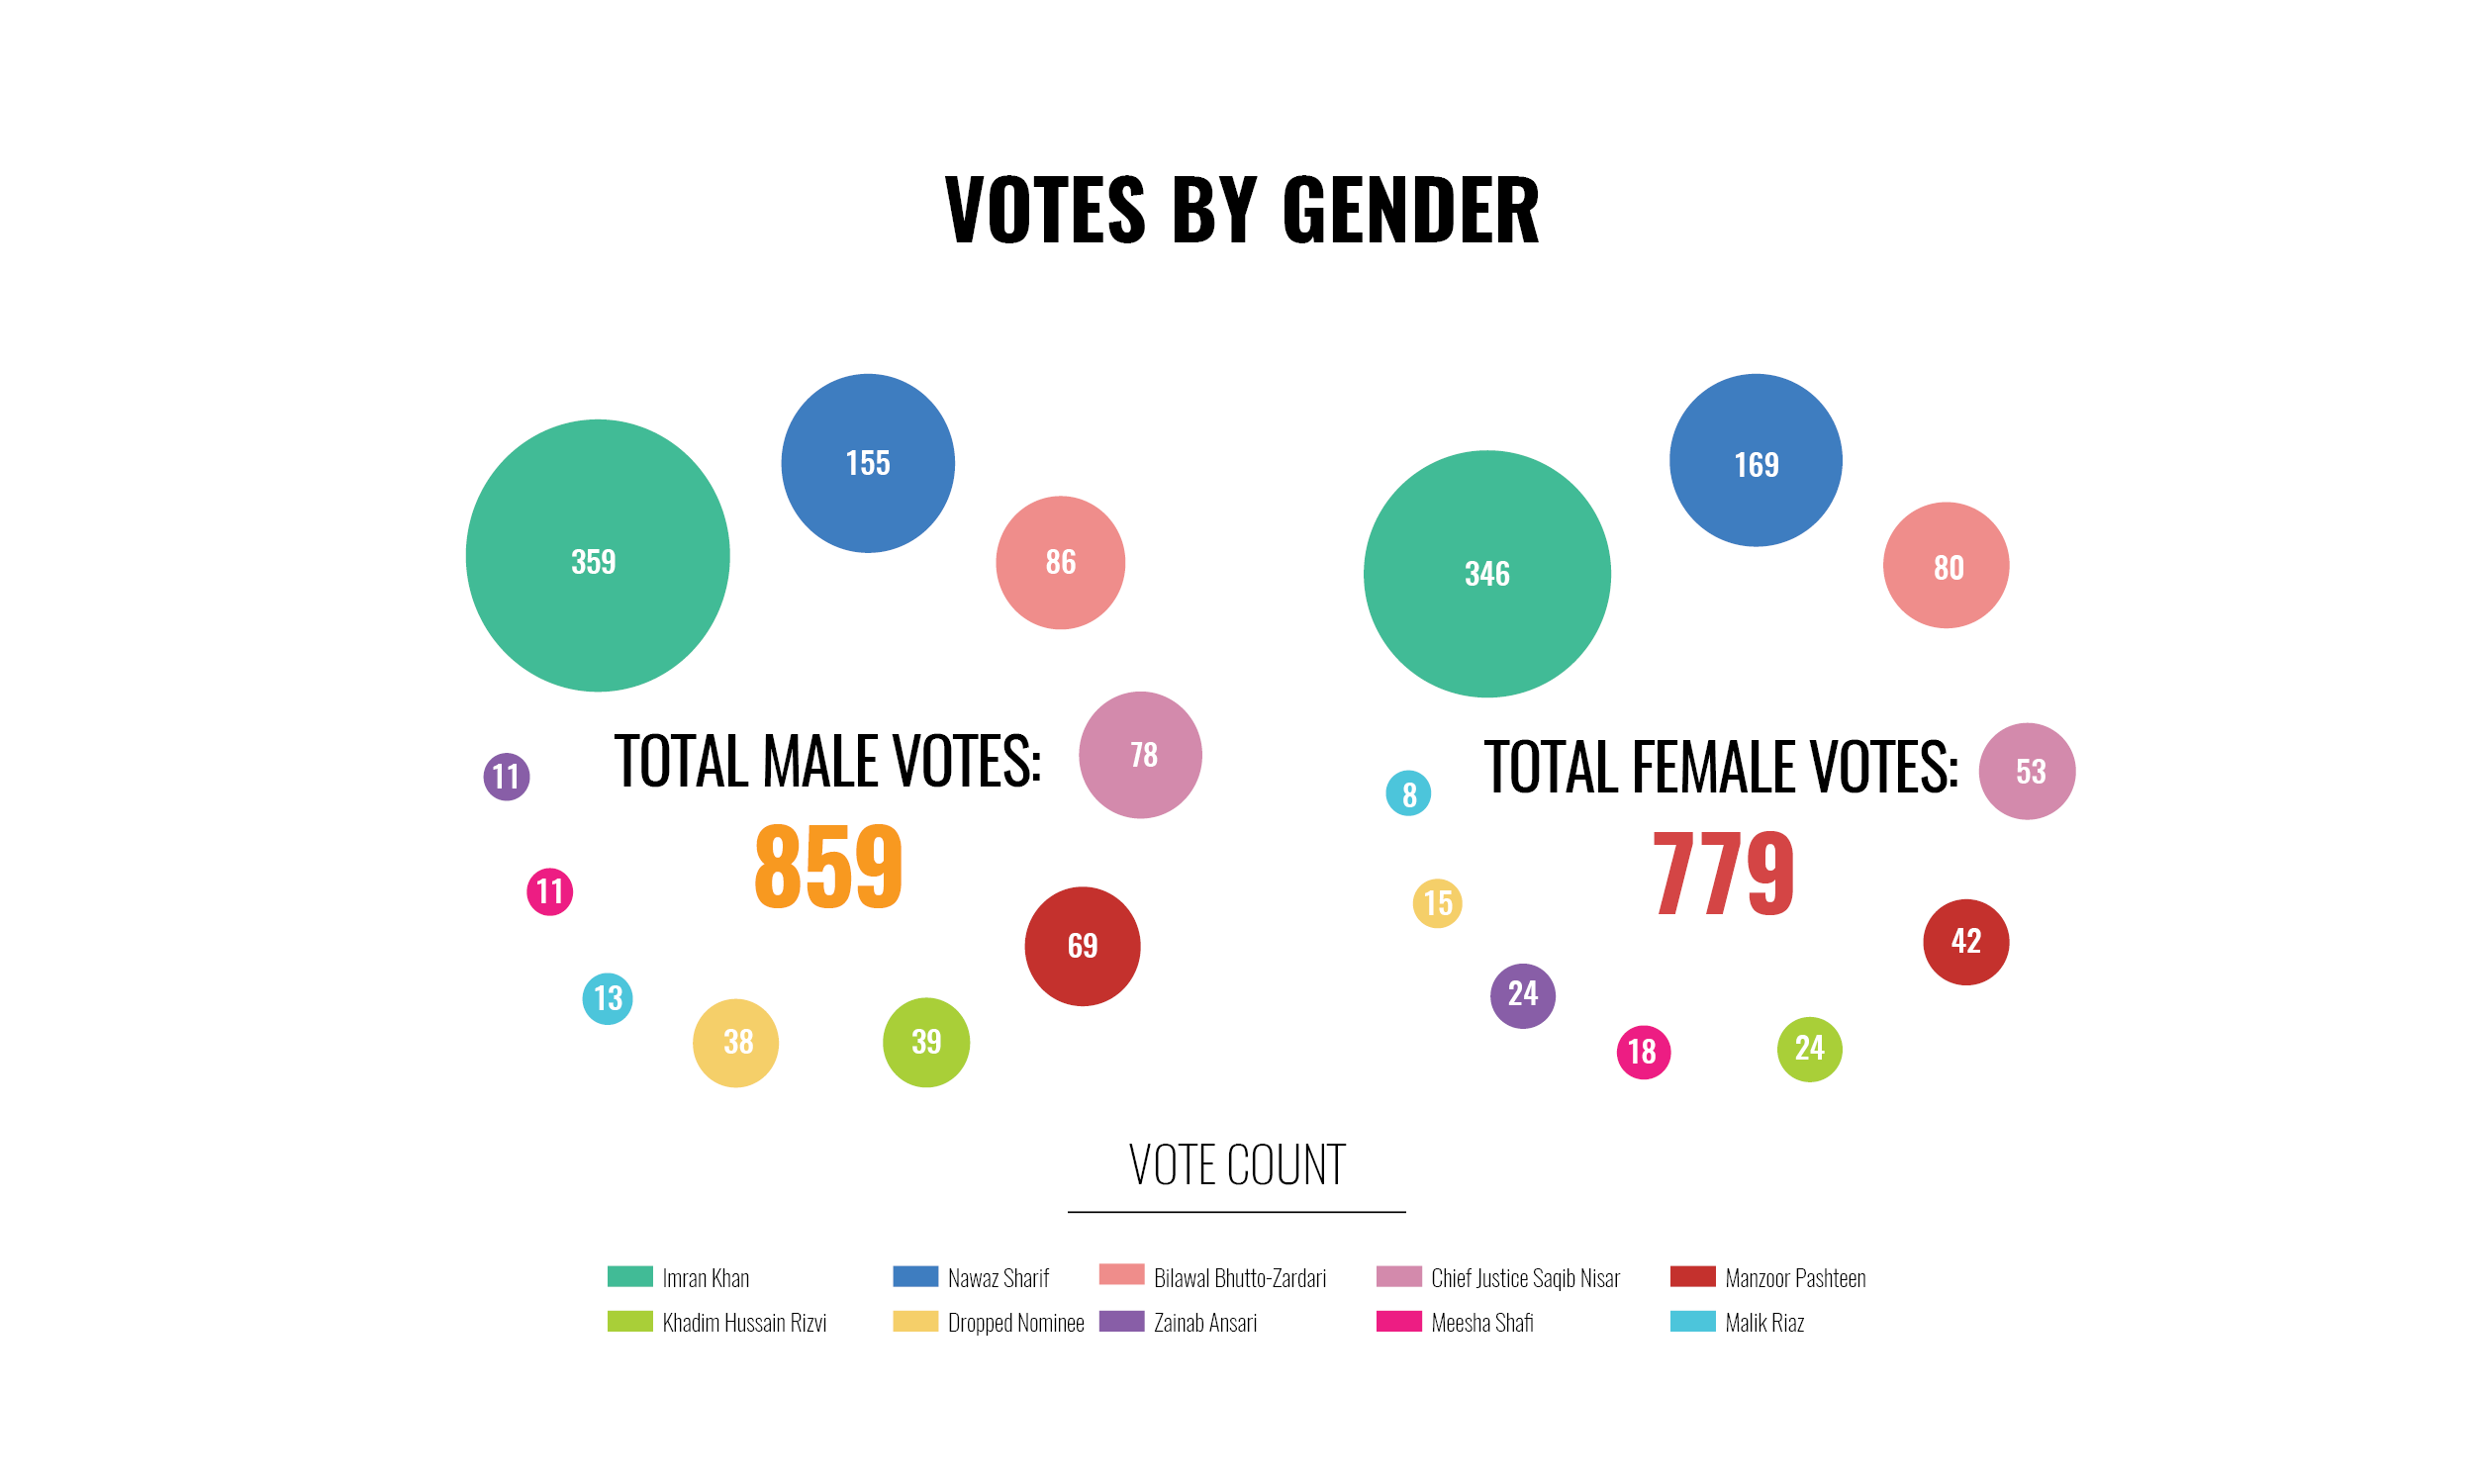 Ground survey vote breakdown according to gender